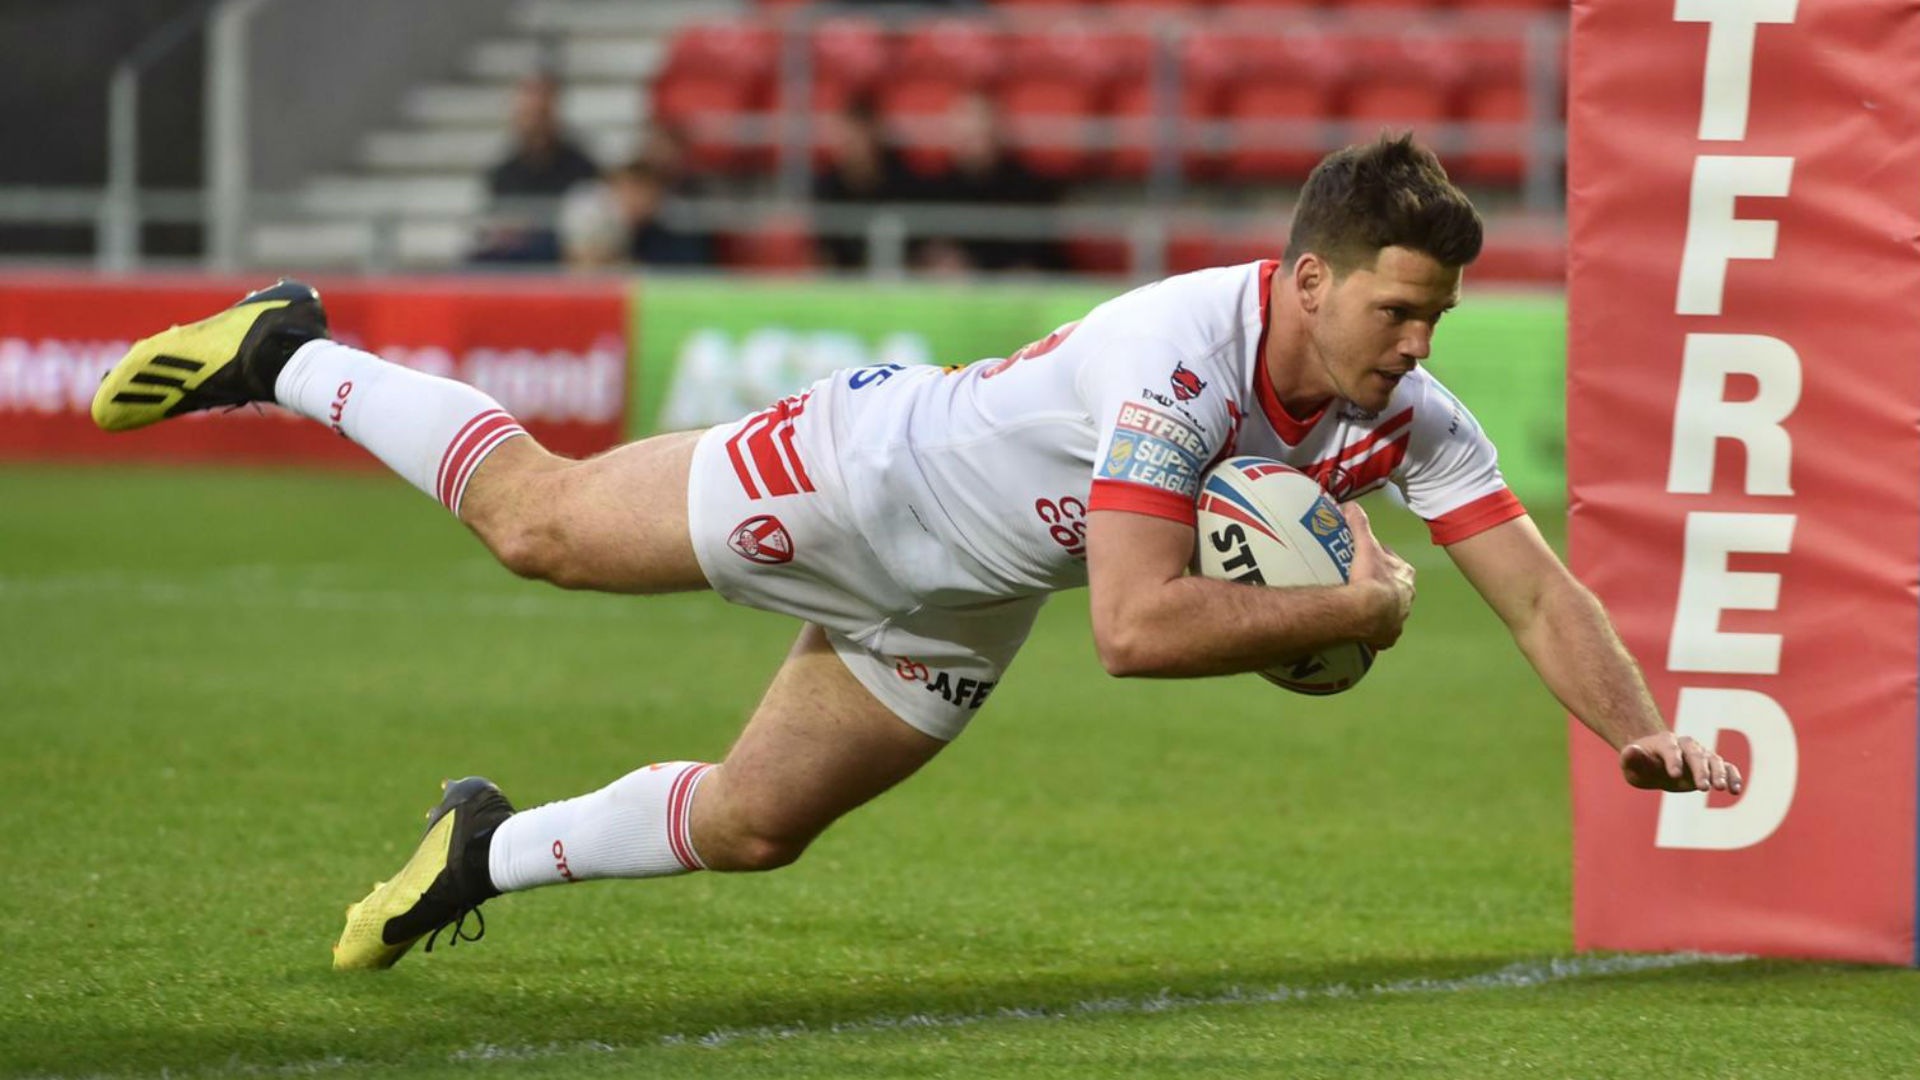 Saints sink Red Devils with controversial late try